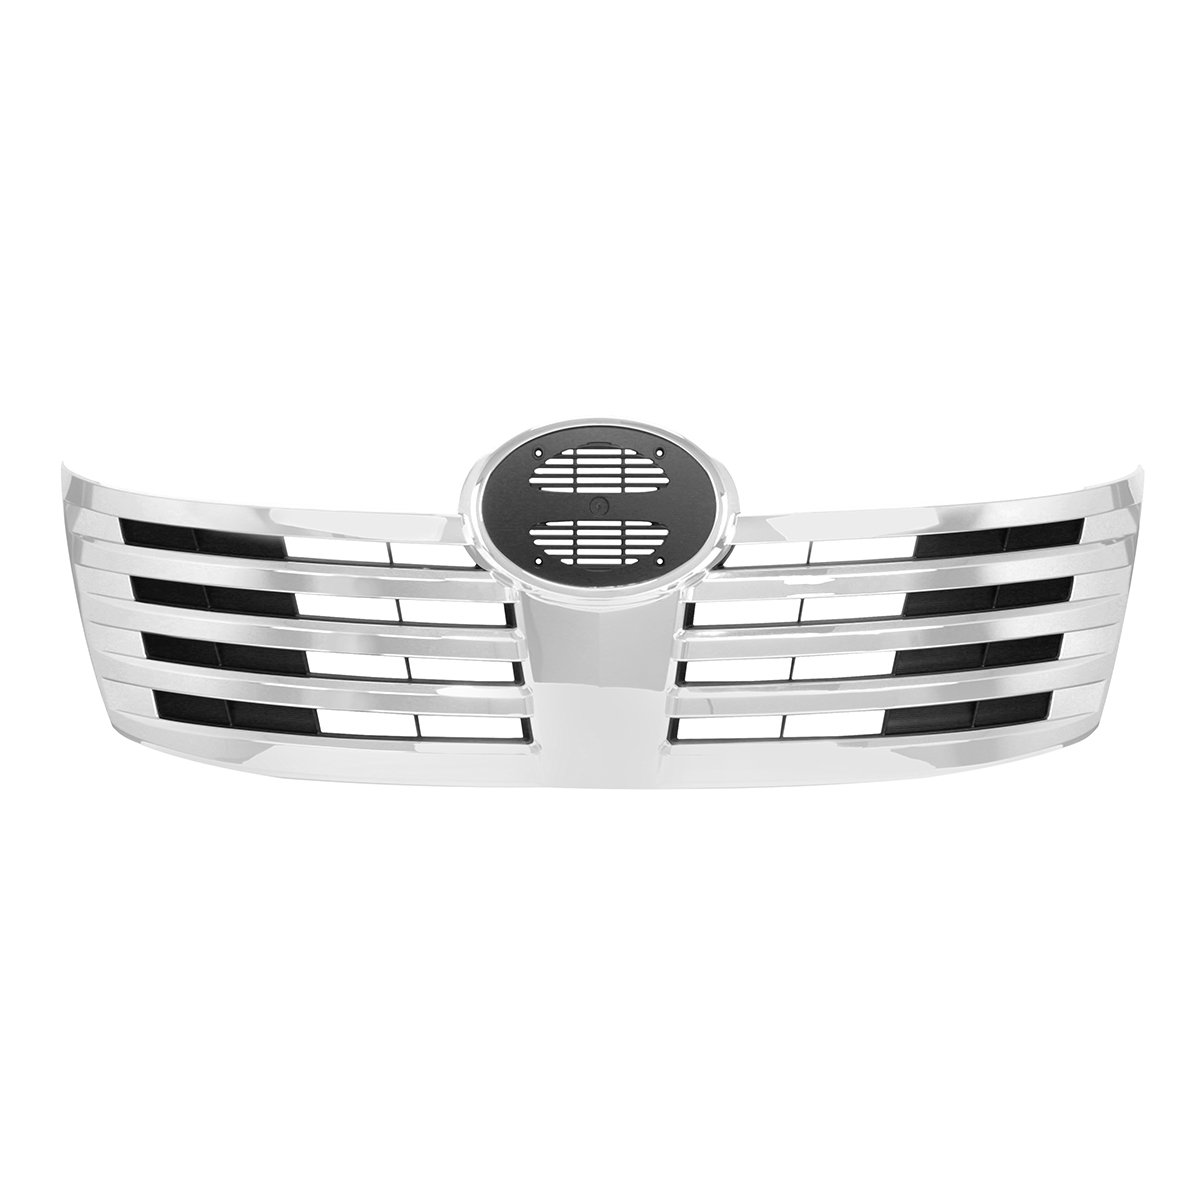 Grand General 89330 Chrome Plastic Grille for Hino 238